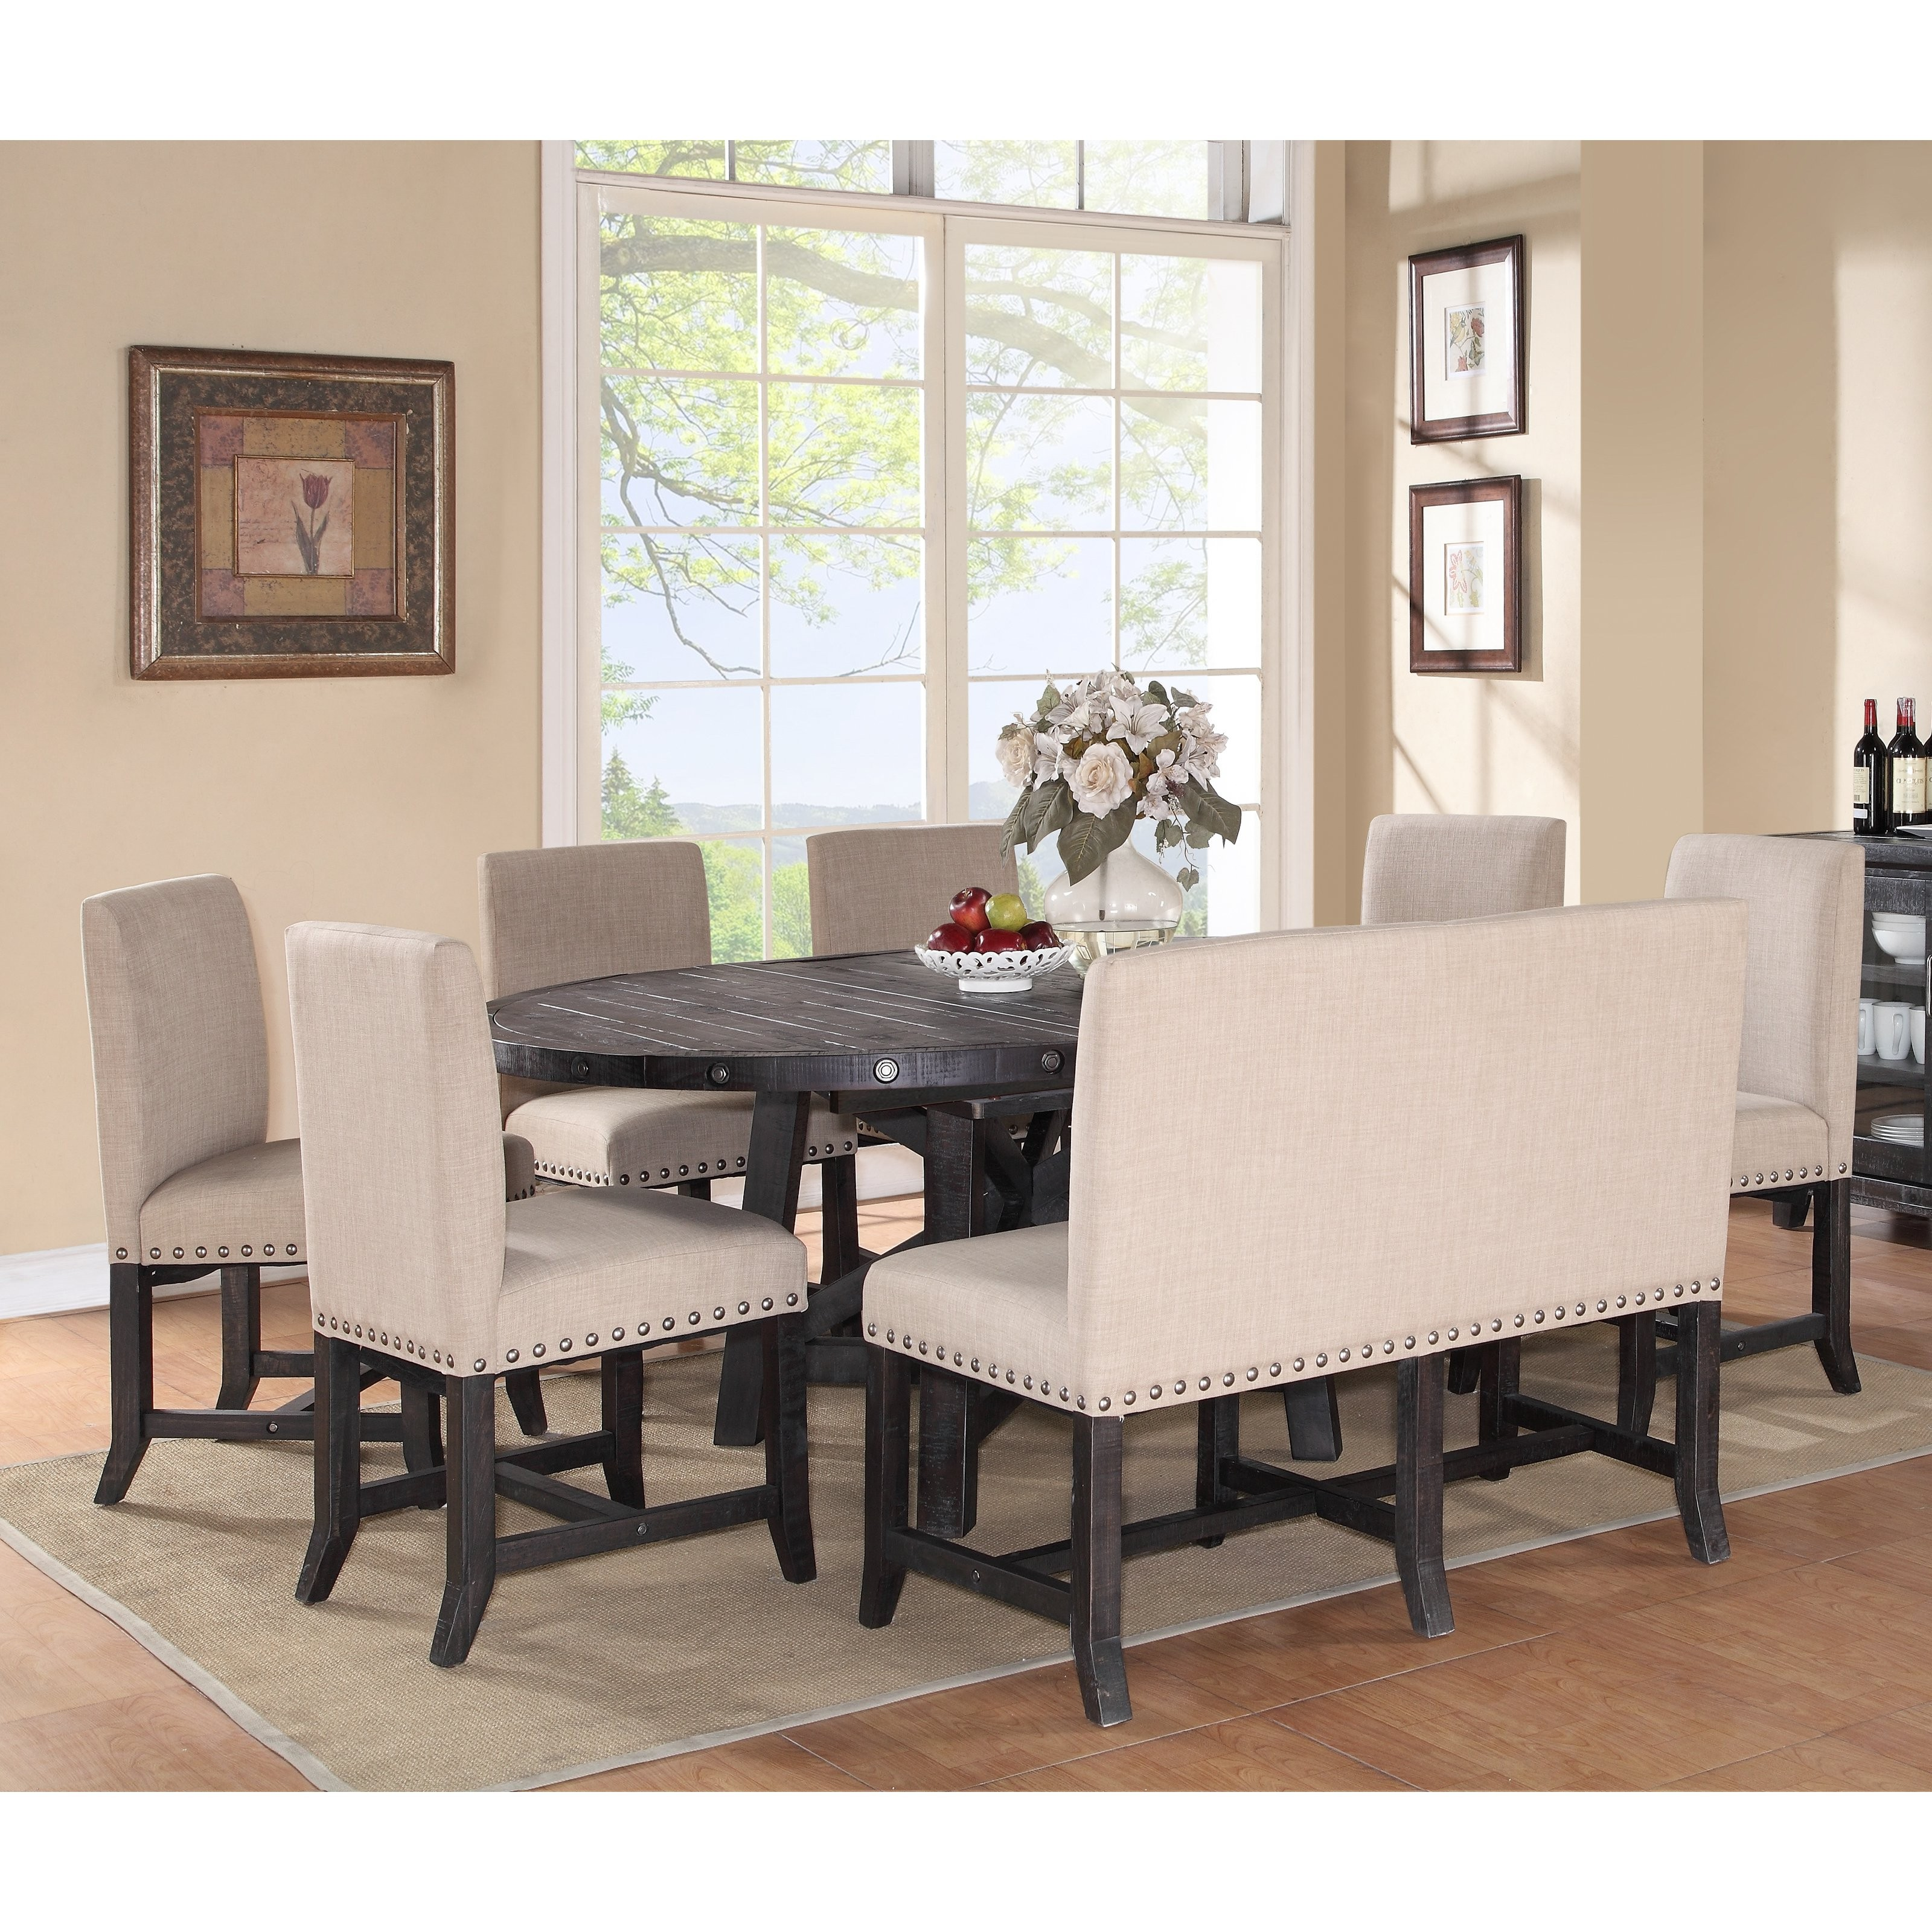 Dining Room Sets With Upholstered Chairs